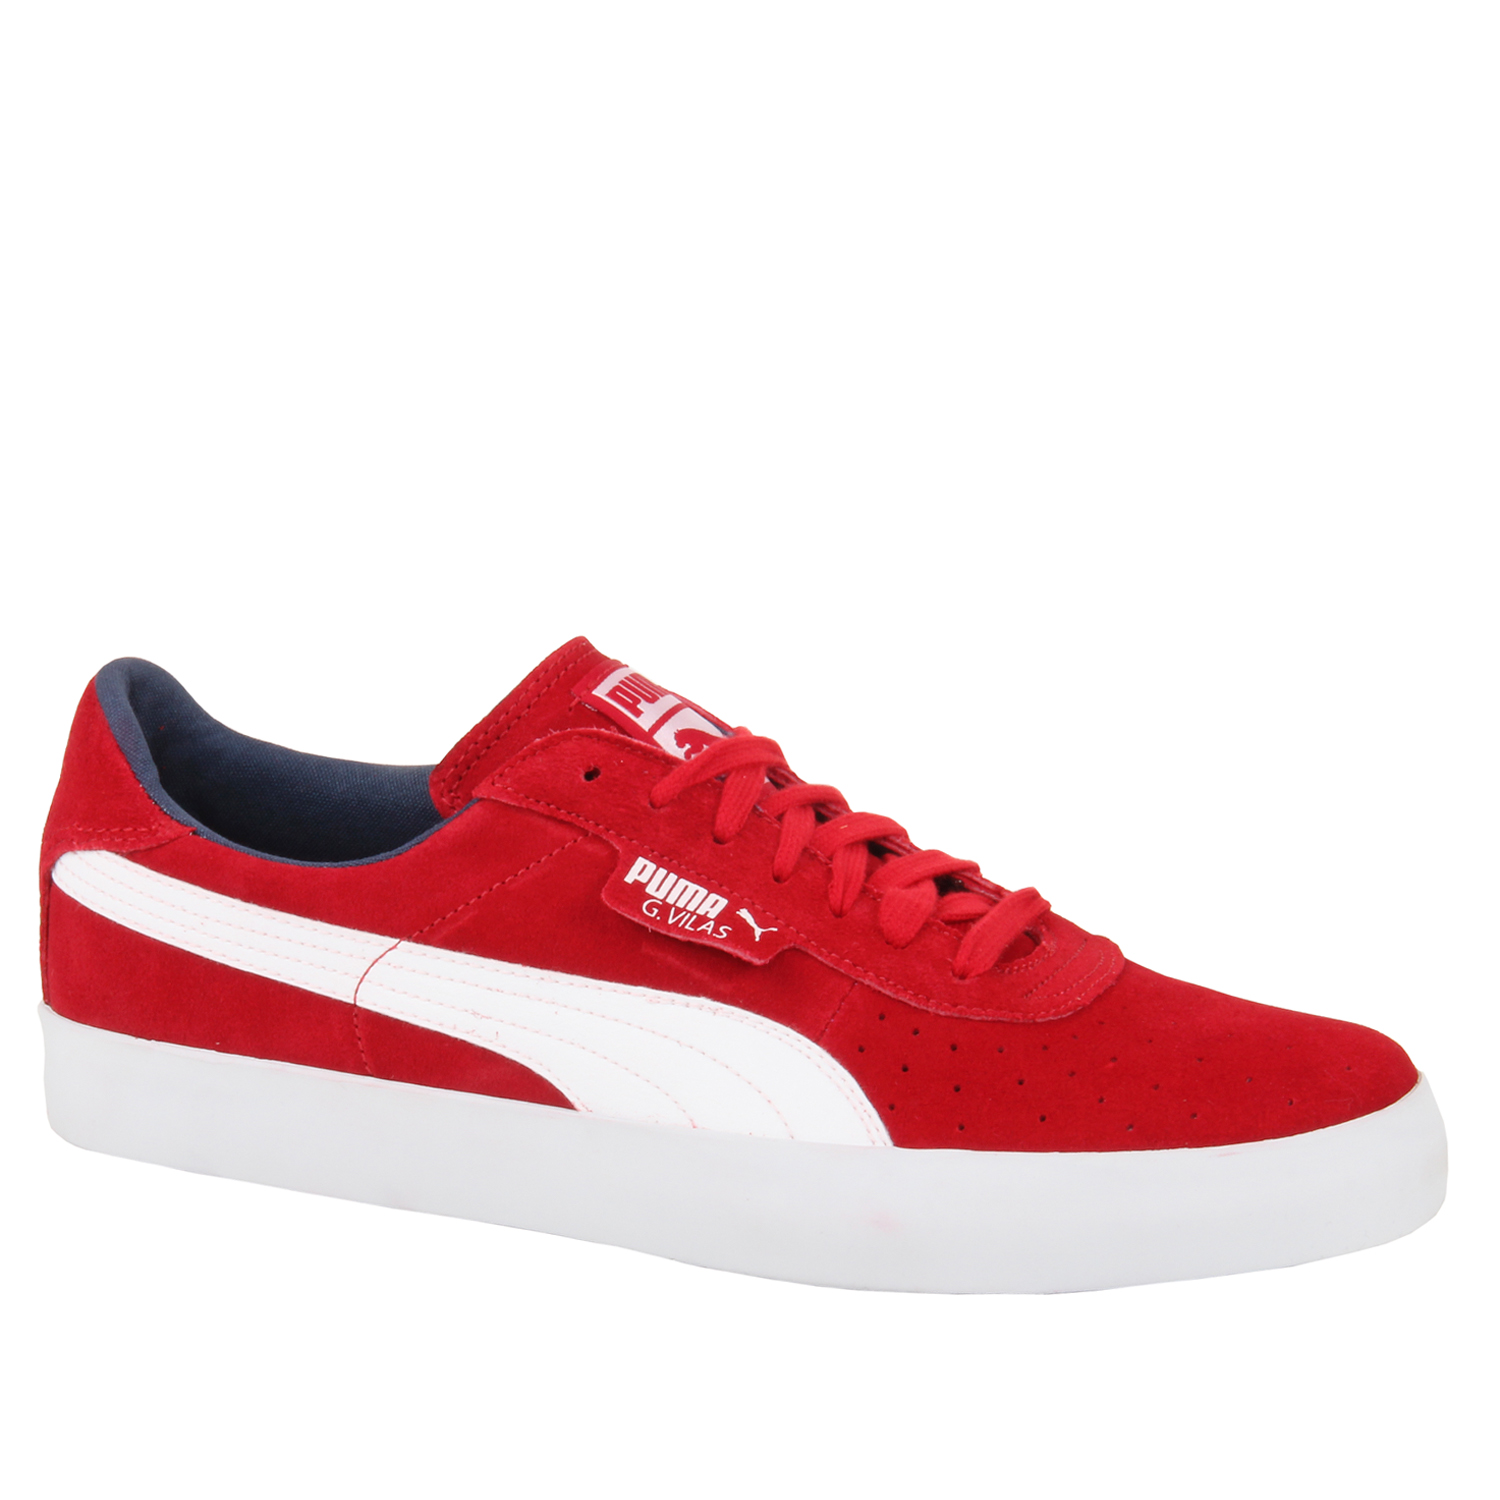 mens retro g villas classic suede leather trainers